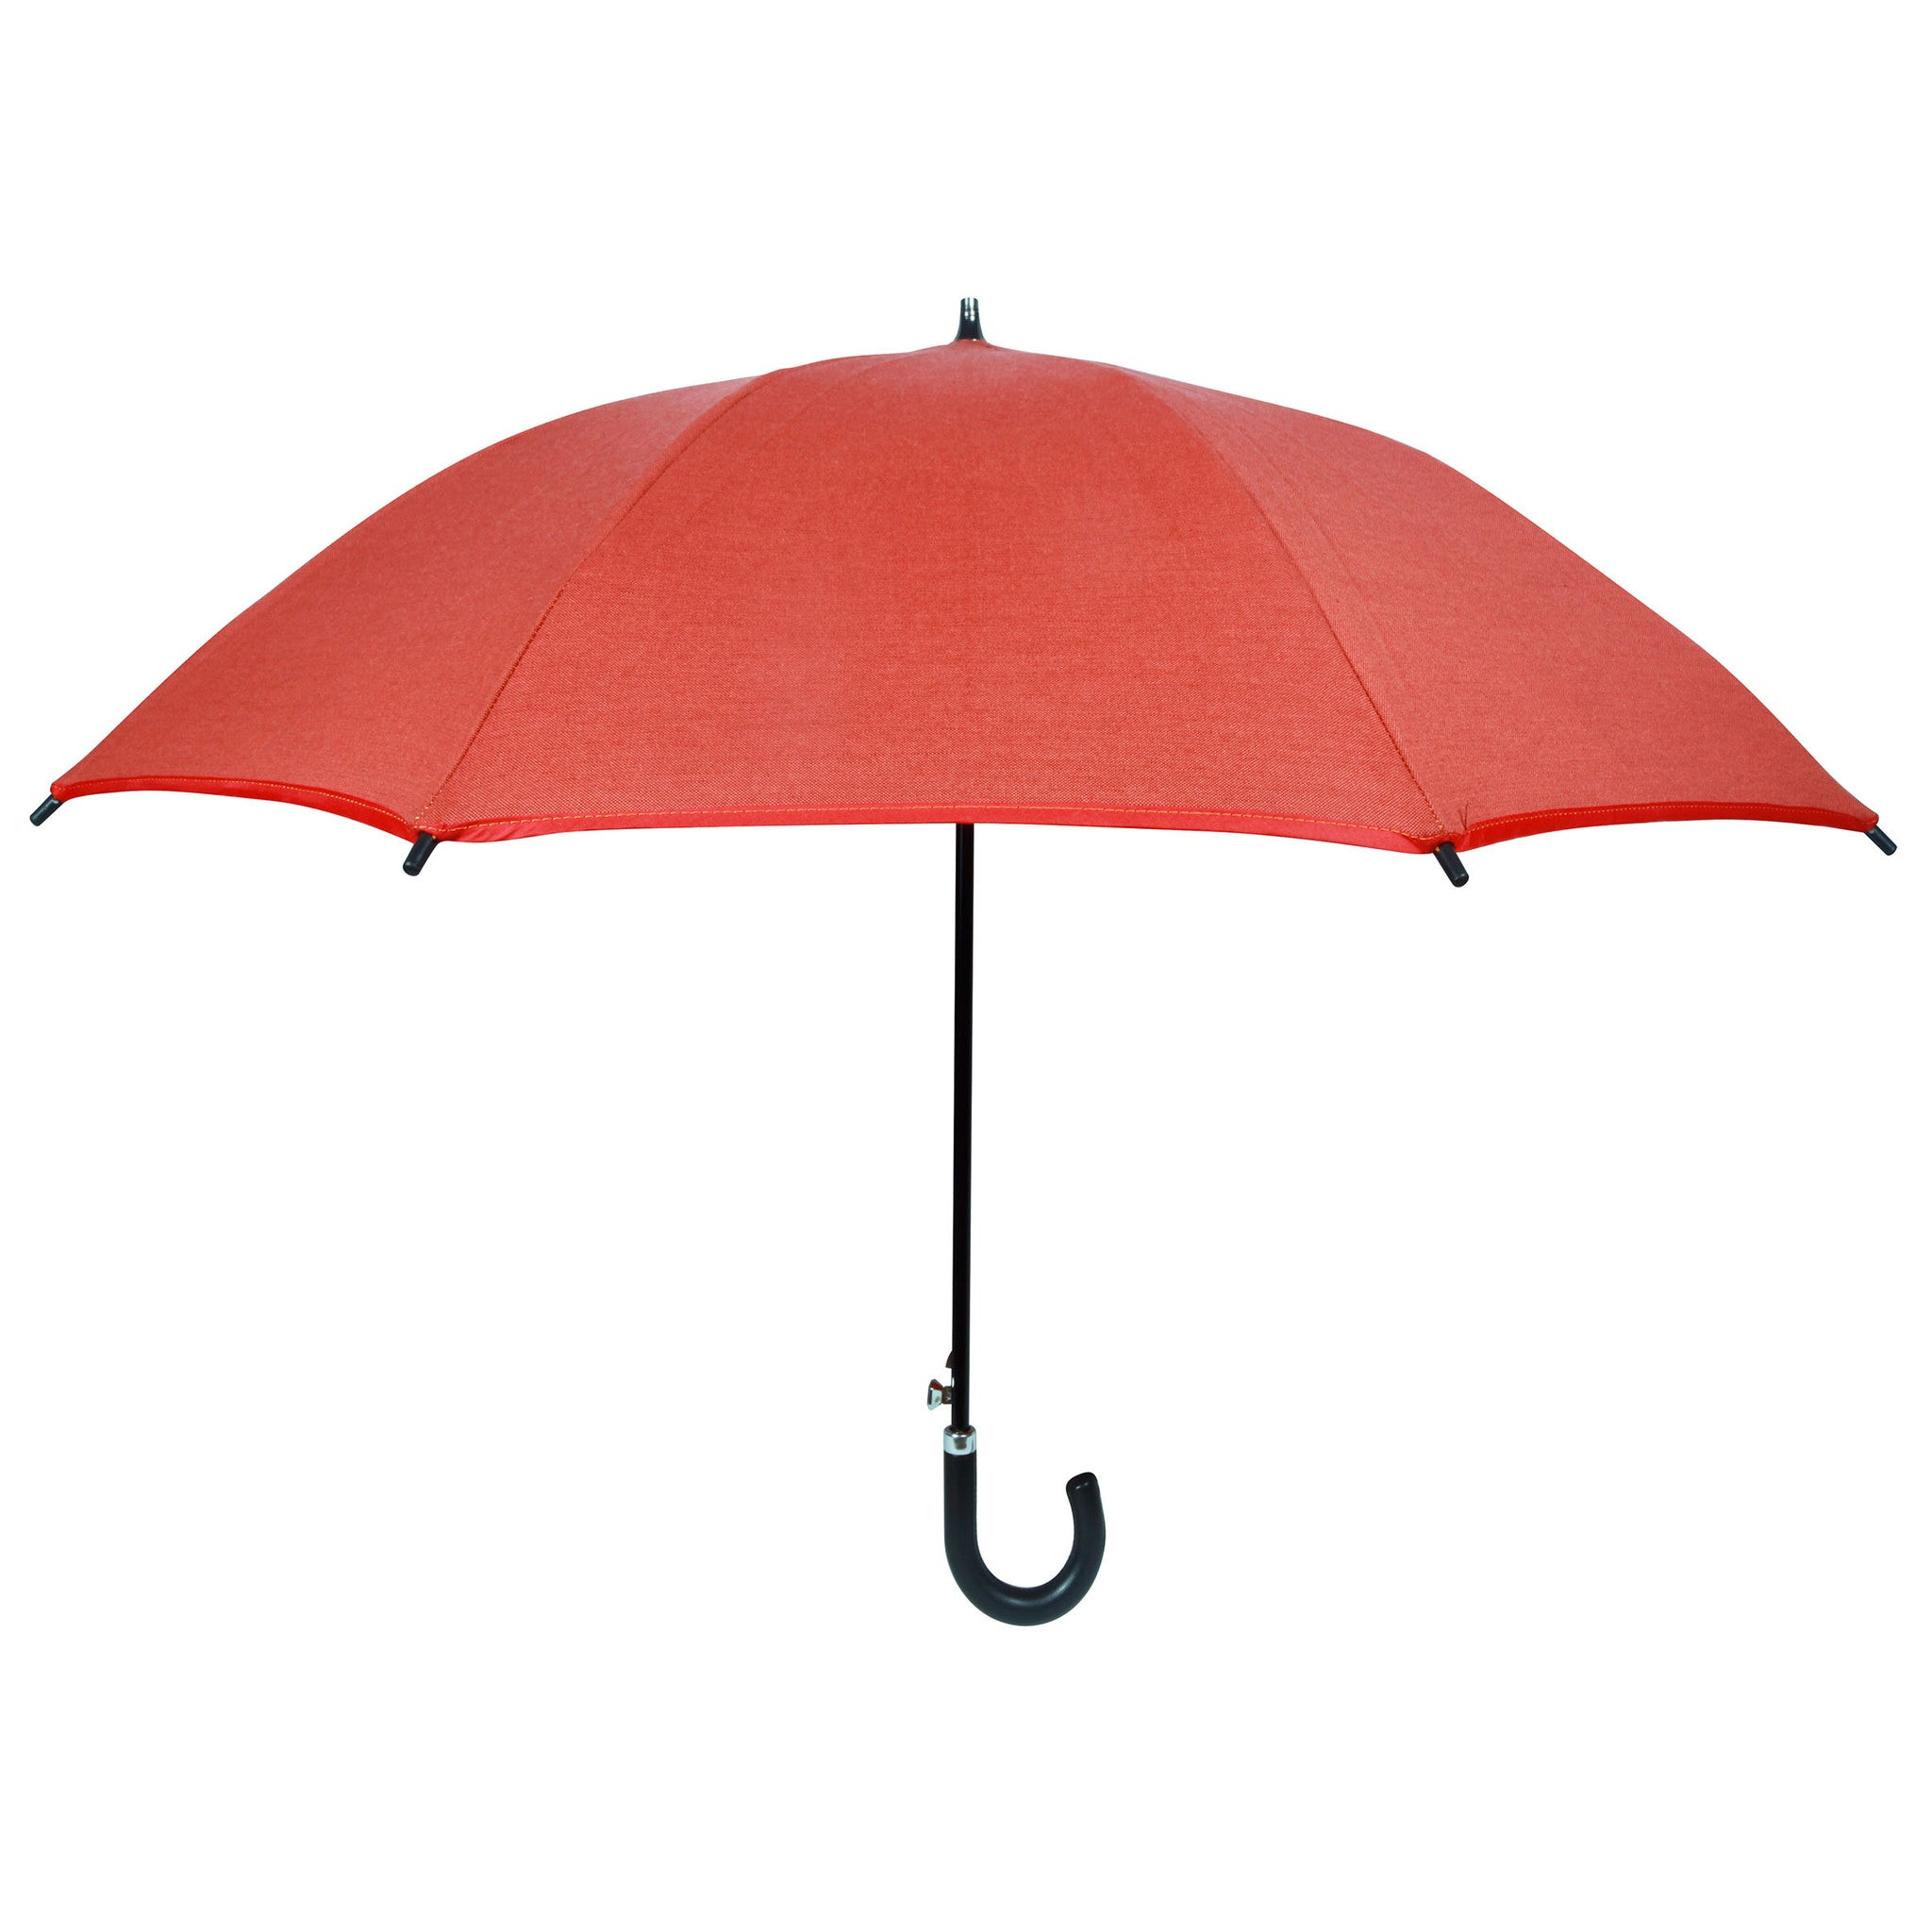 Blue Jean Umbrella™ featuring Sunset Orange Sunbrella™ Fabric w/ sleeve and shoulder strap